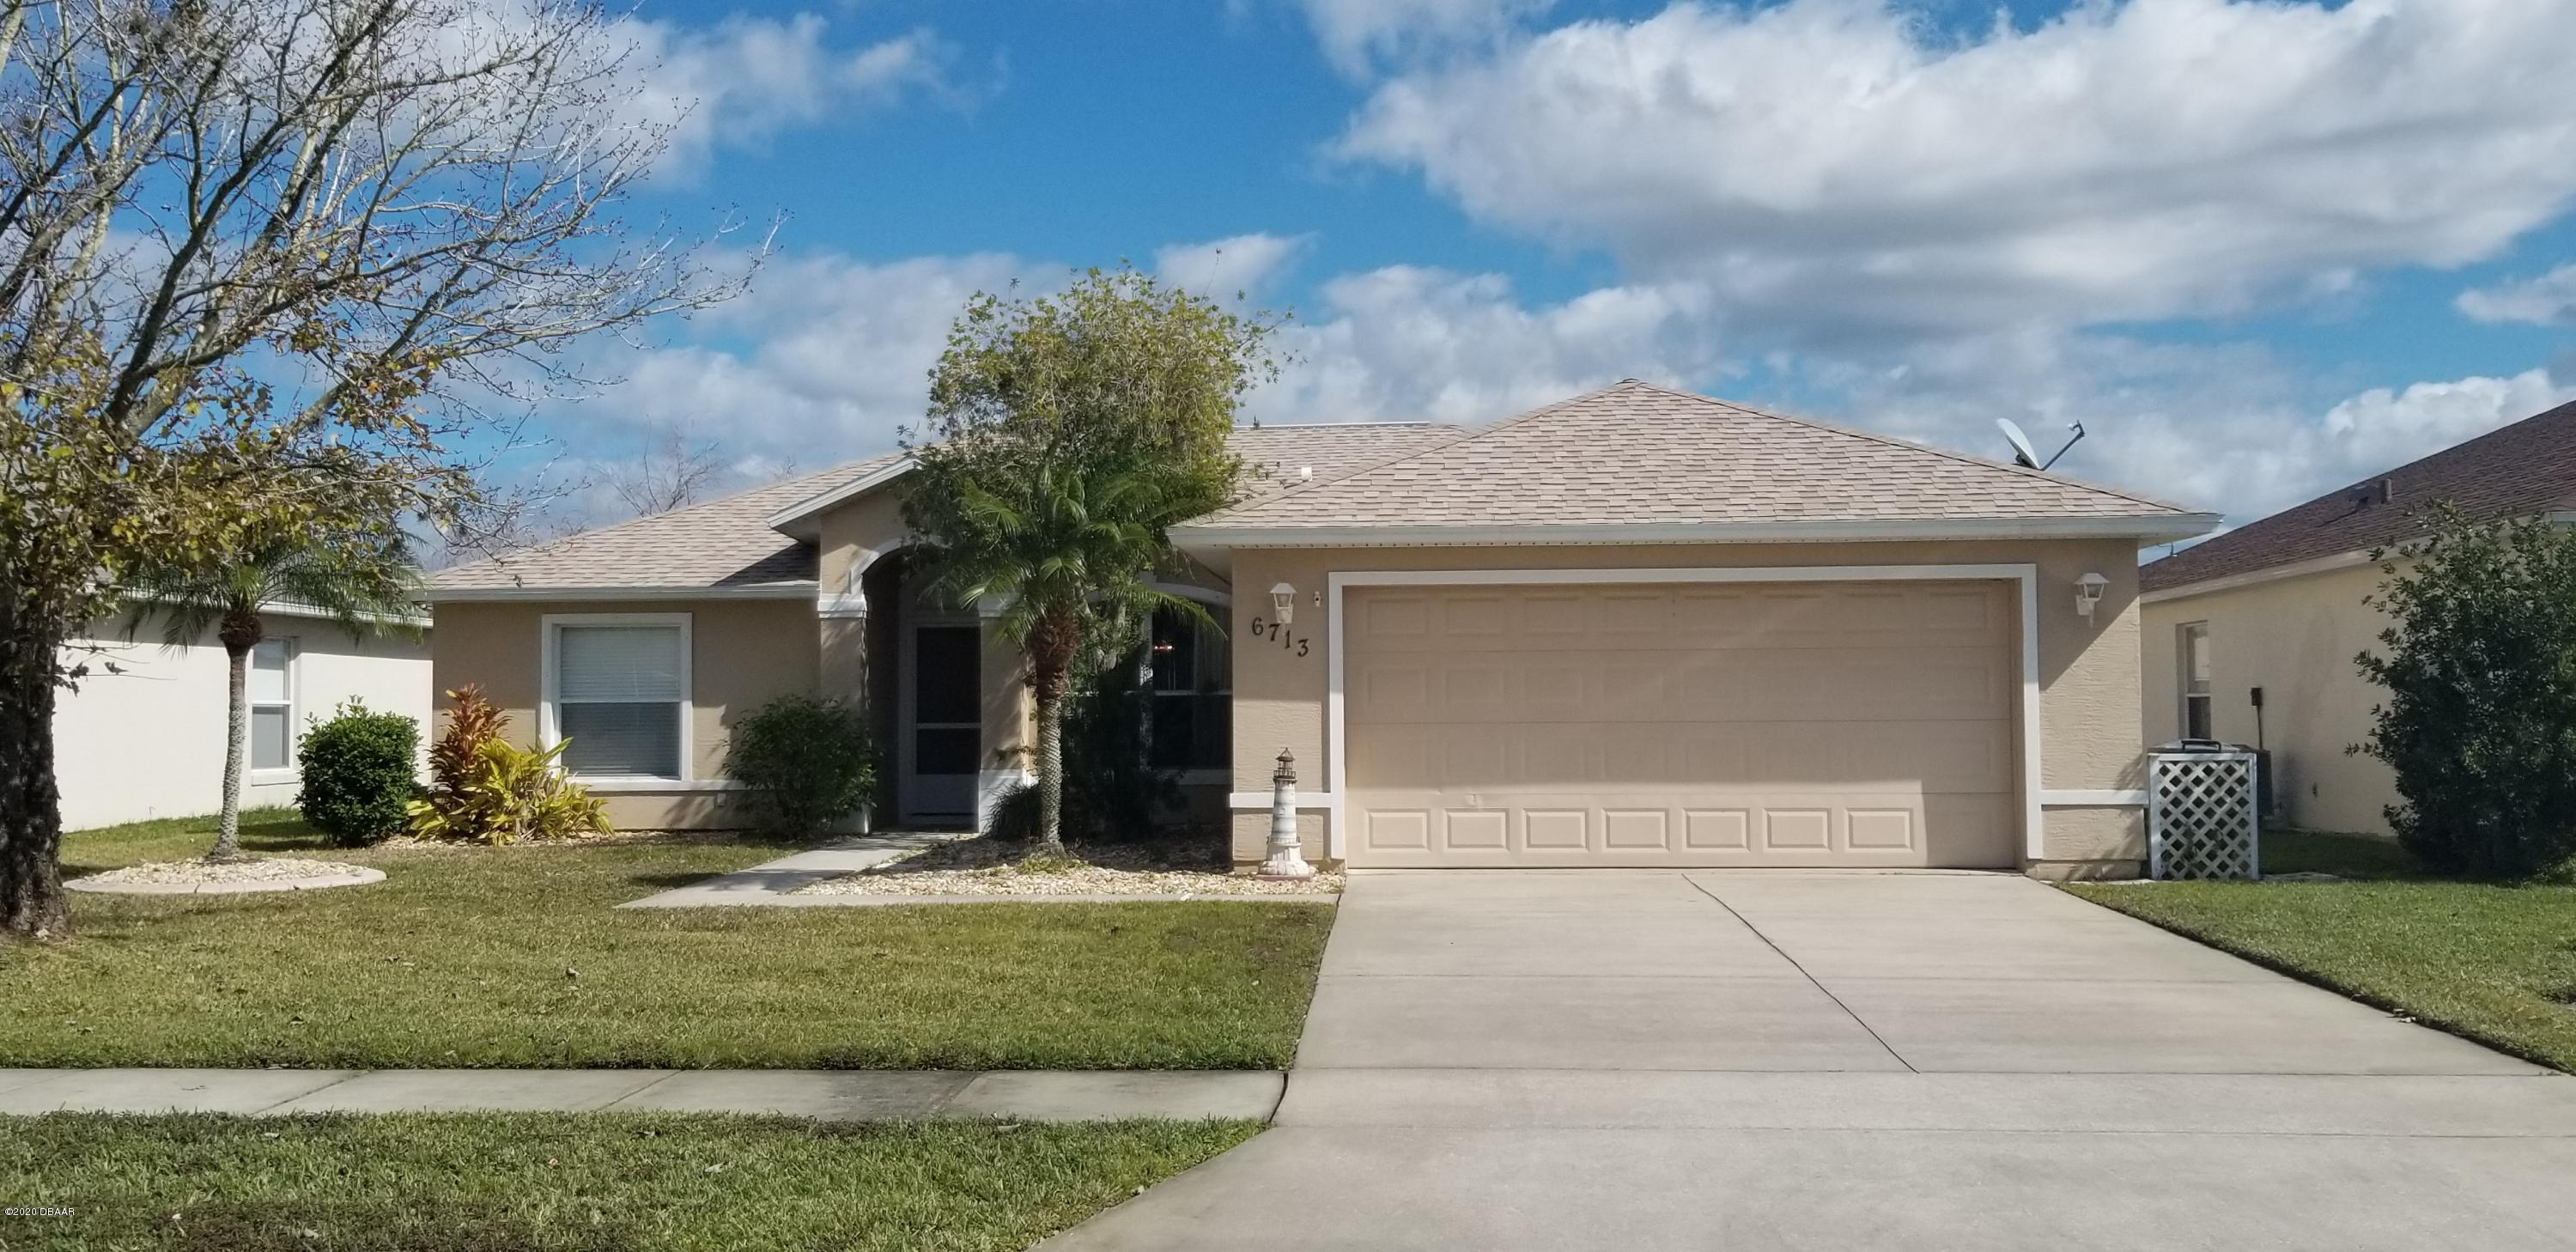 6713 Ferri Circle, Port Orange, FL 32128